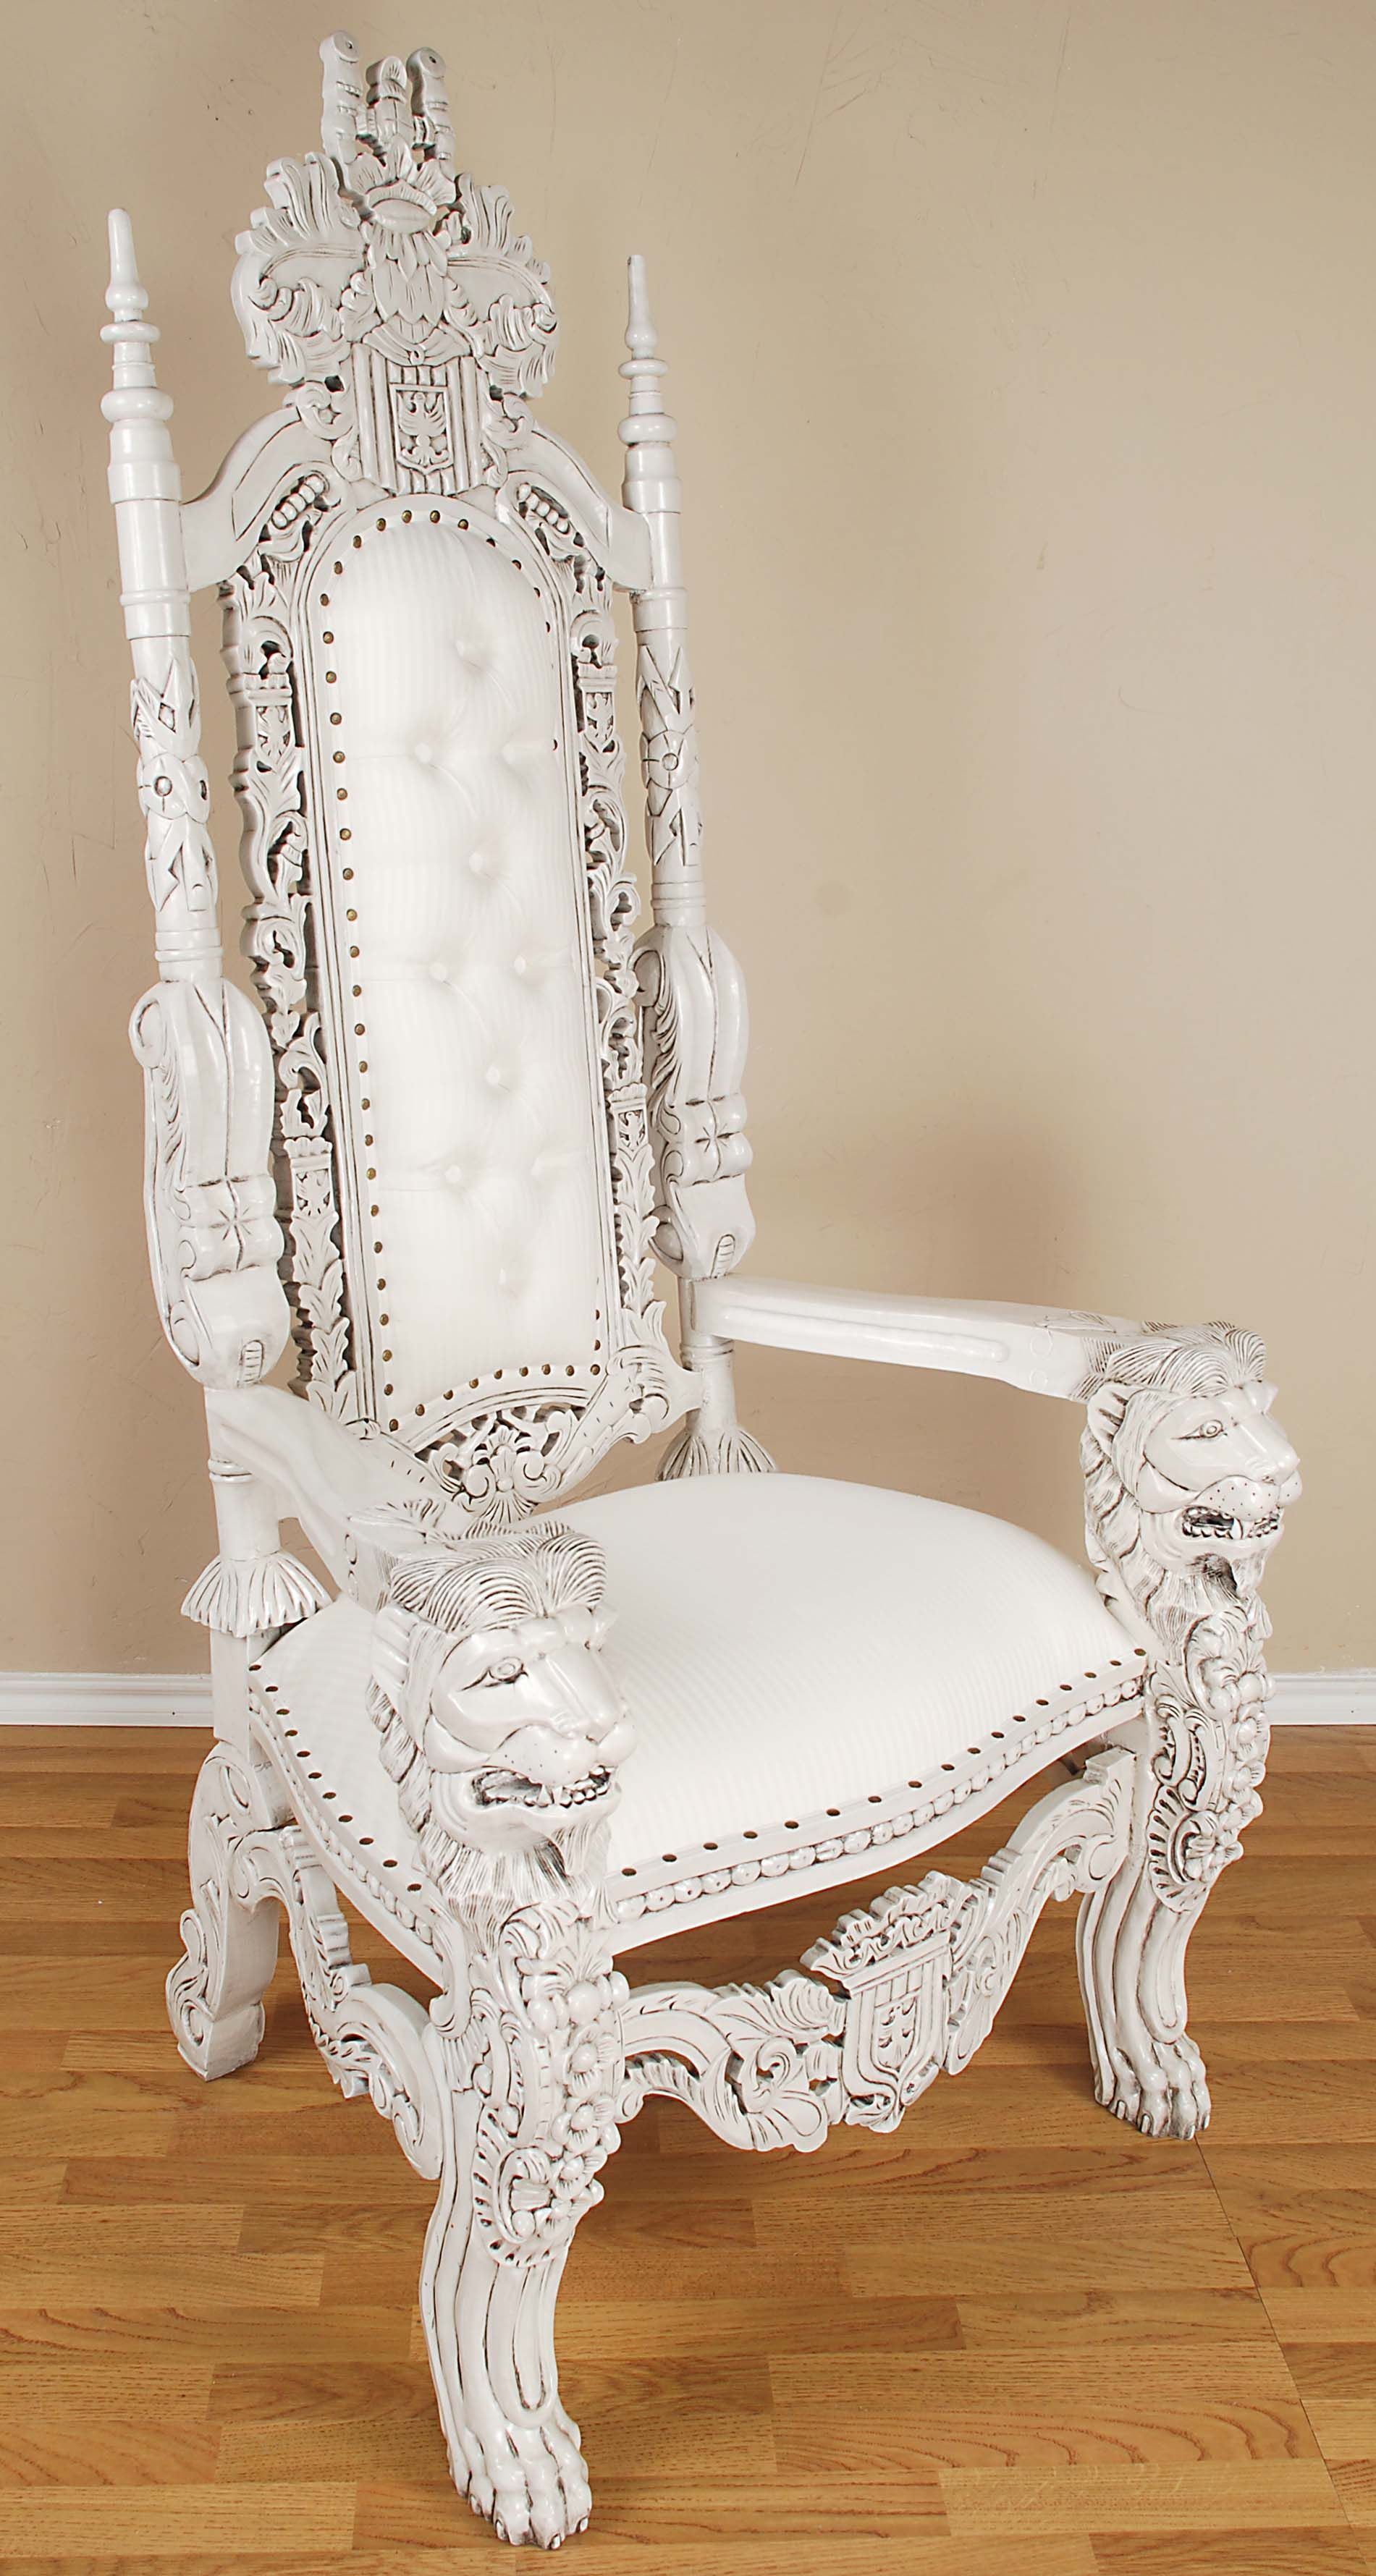 King Lion Throne Chair White For the Home Pinterest